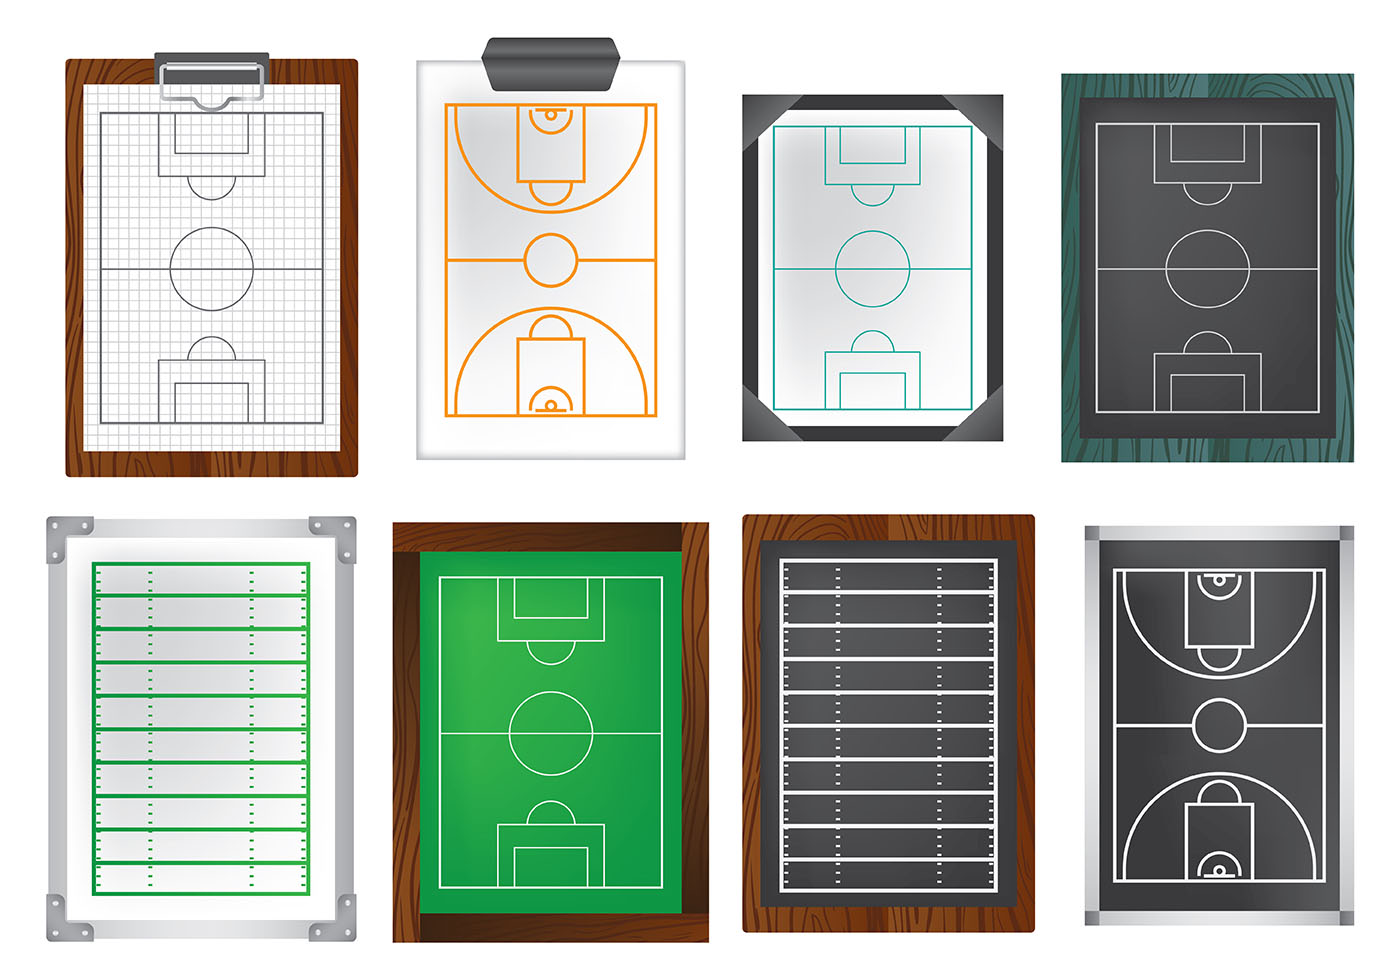 Free Playbook Icons Vector - Download Free Vectors ...